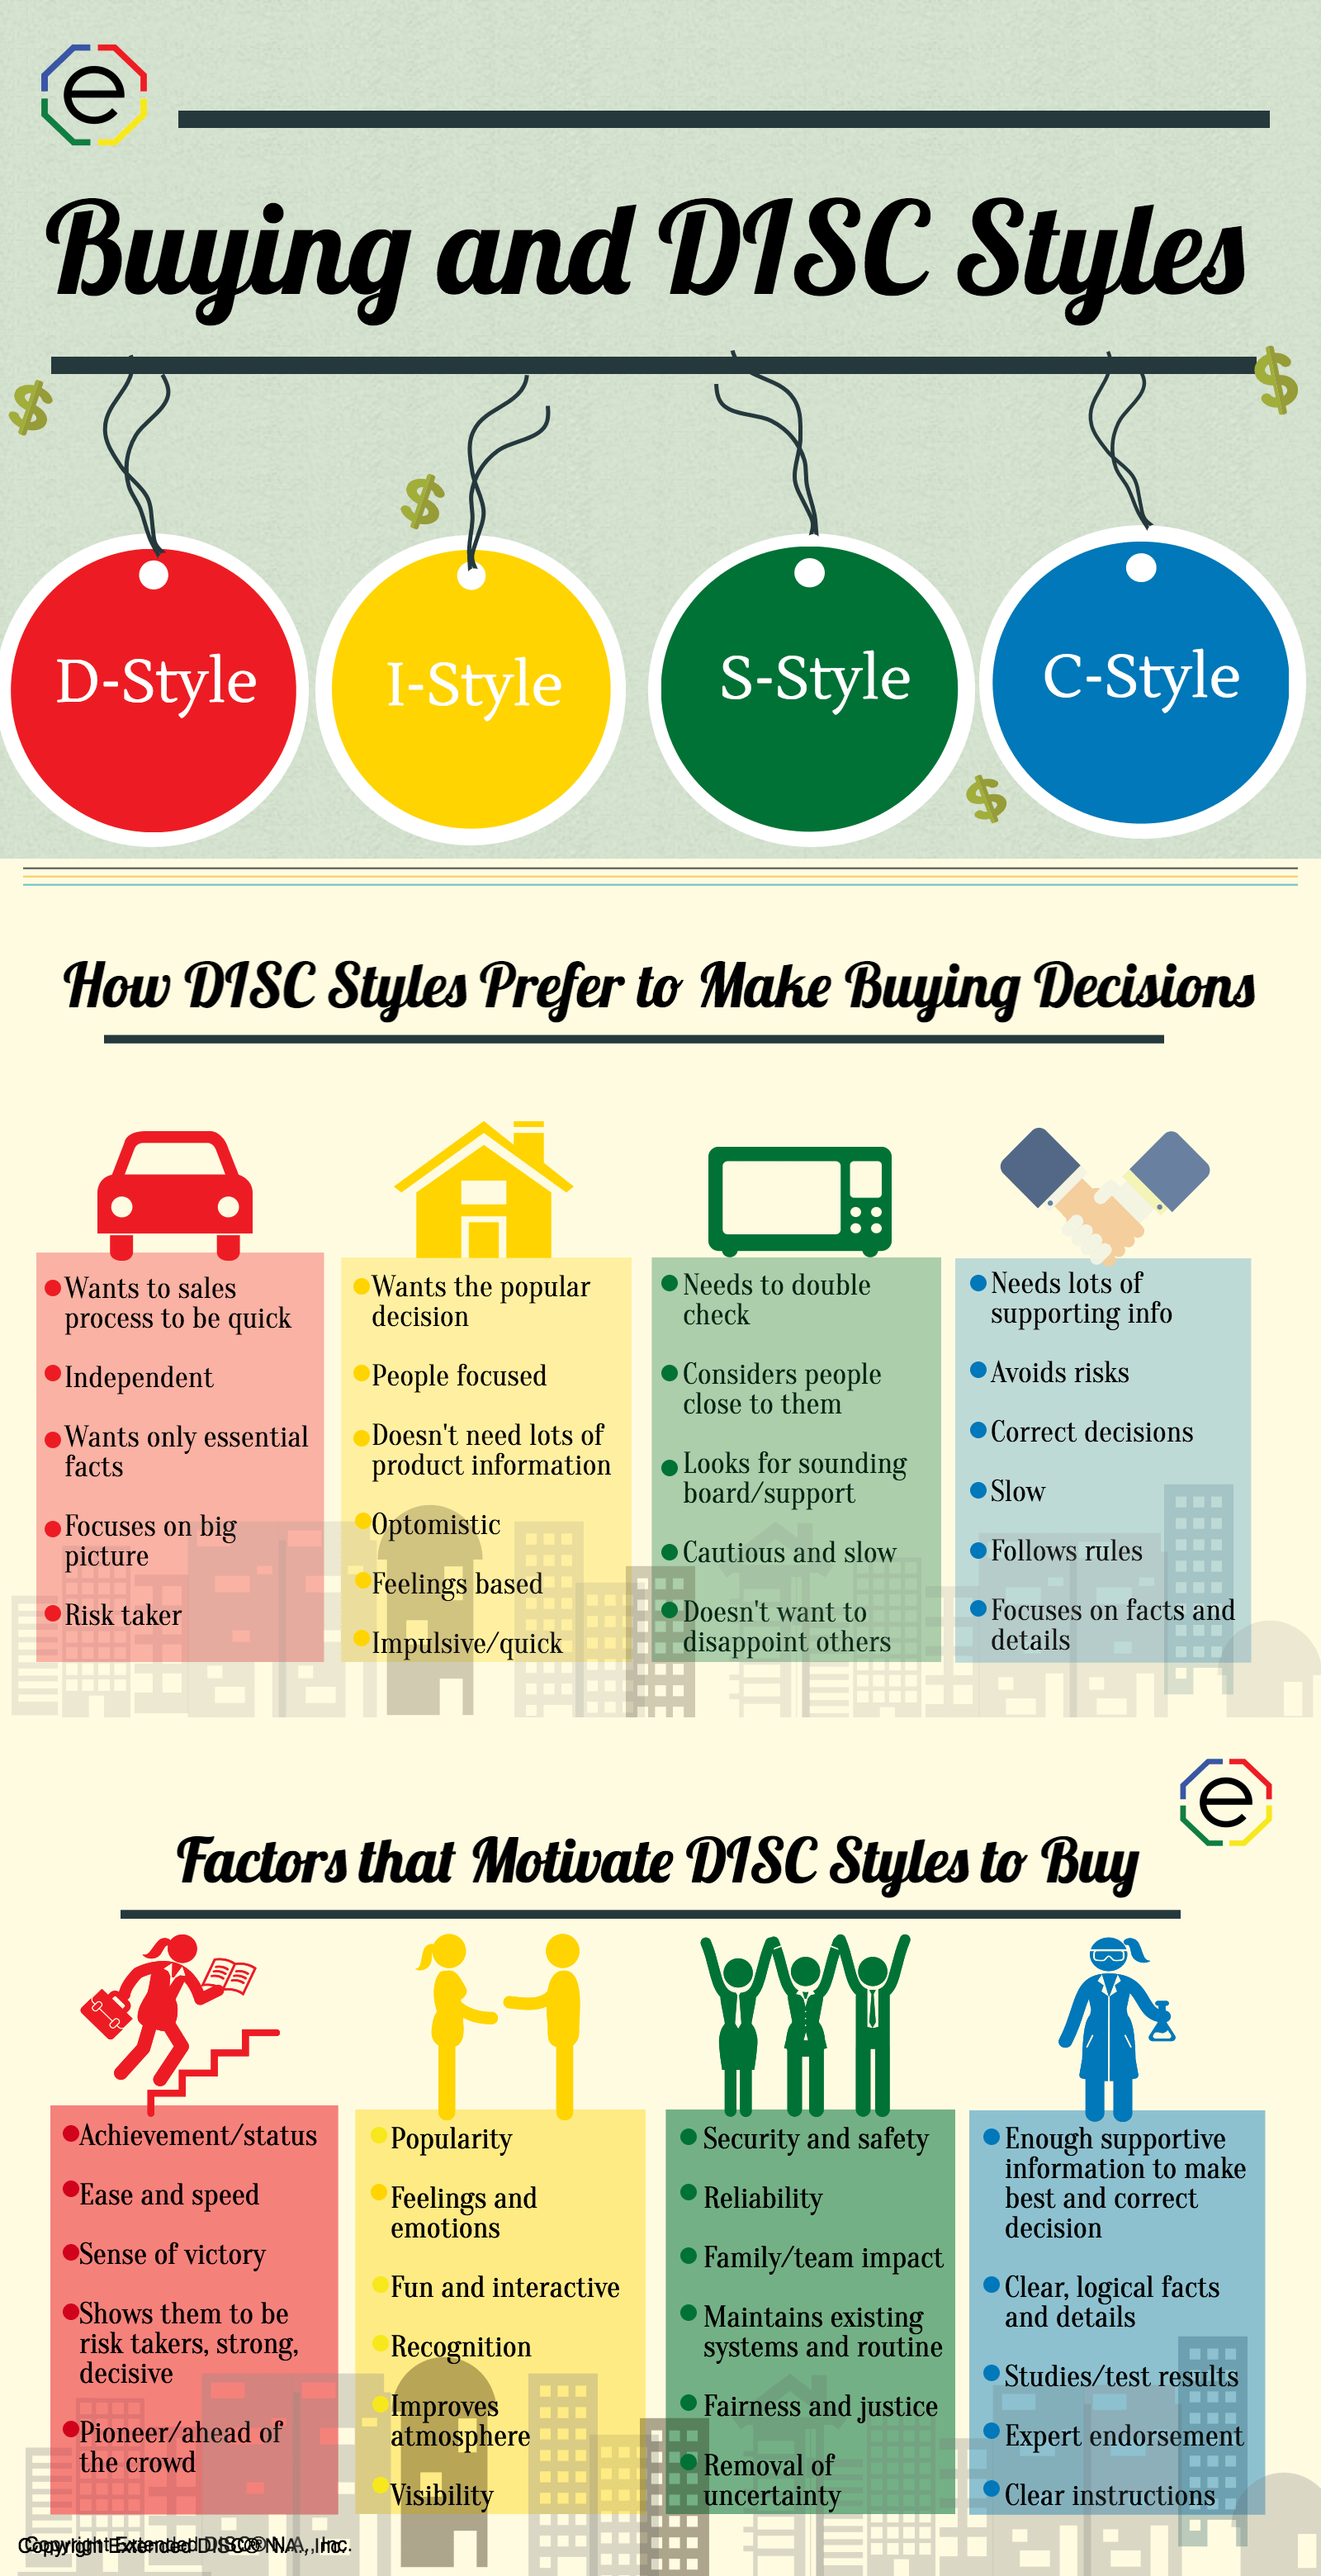 Buying and DISC Styles